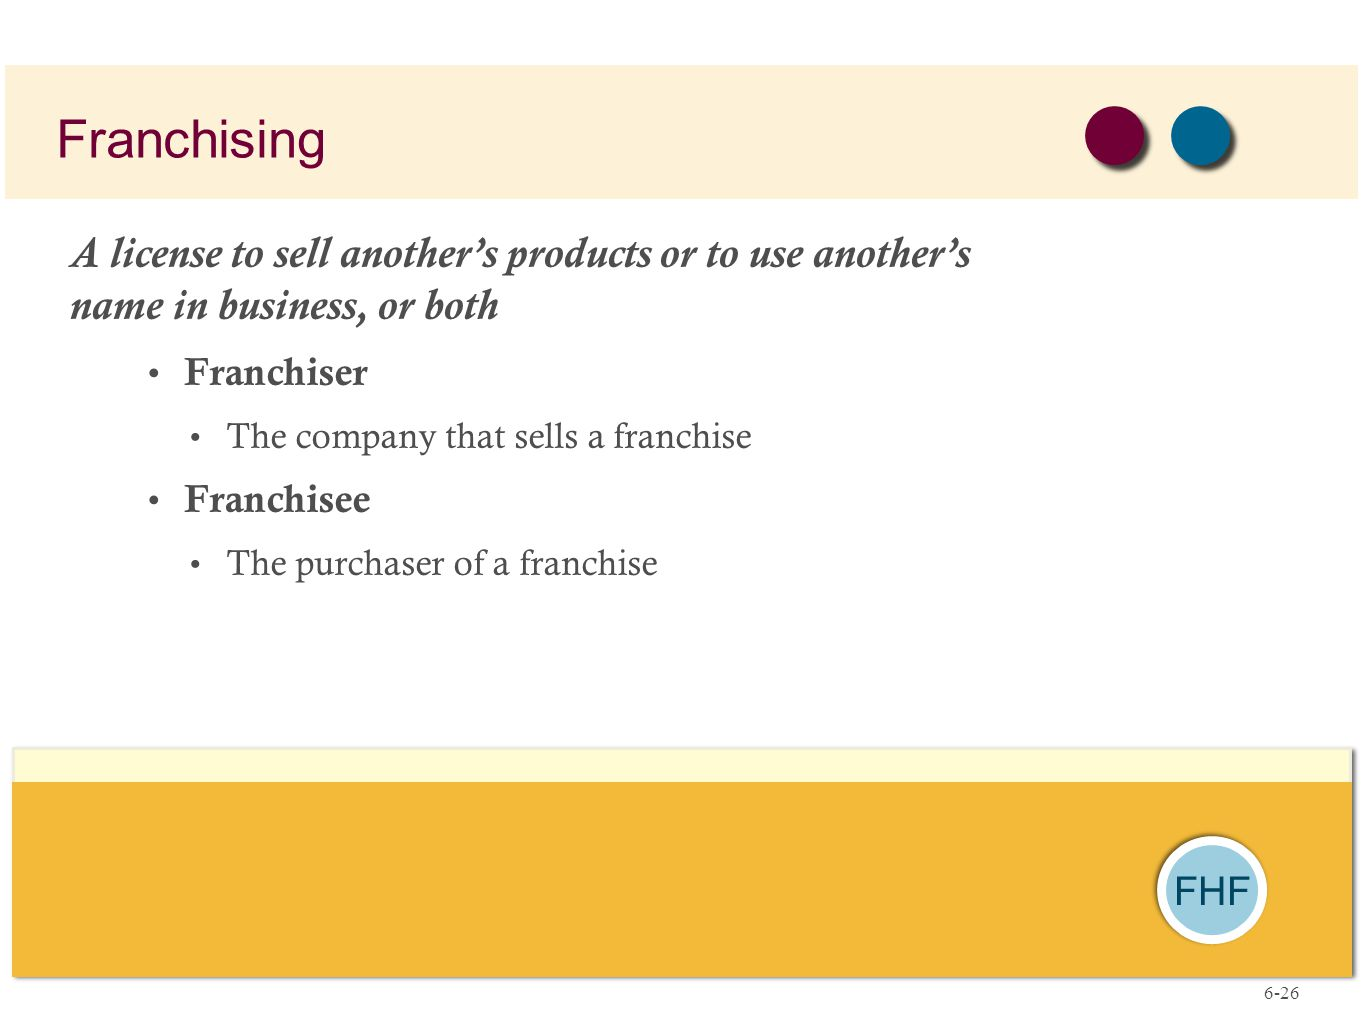 FHF A license to sell another's products or to use another's name in business, or both Franchiser The company that sells a franchise Franchisee The purchaser of a franchise Franchising 6-26